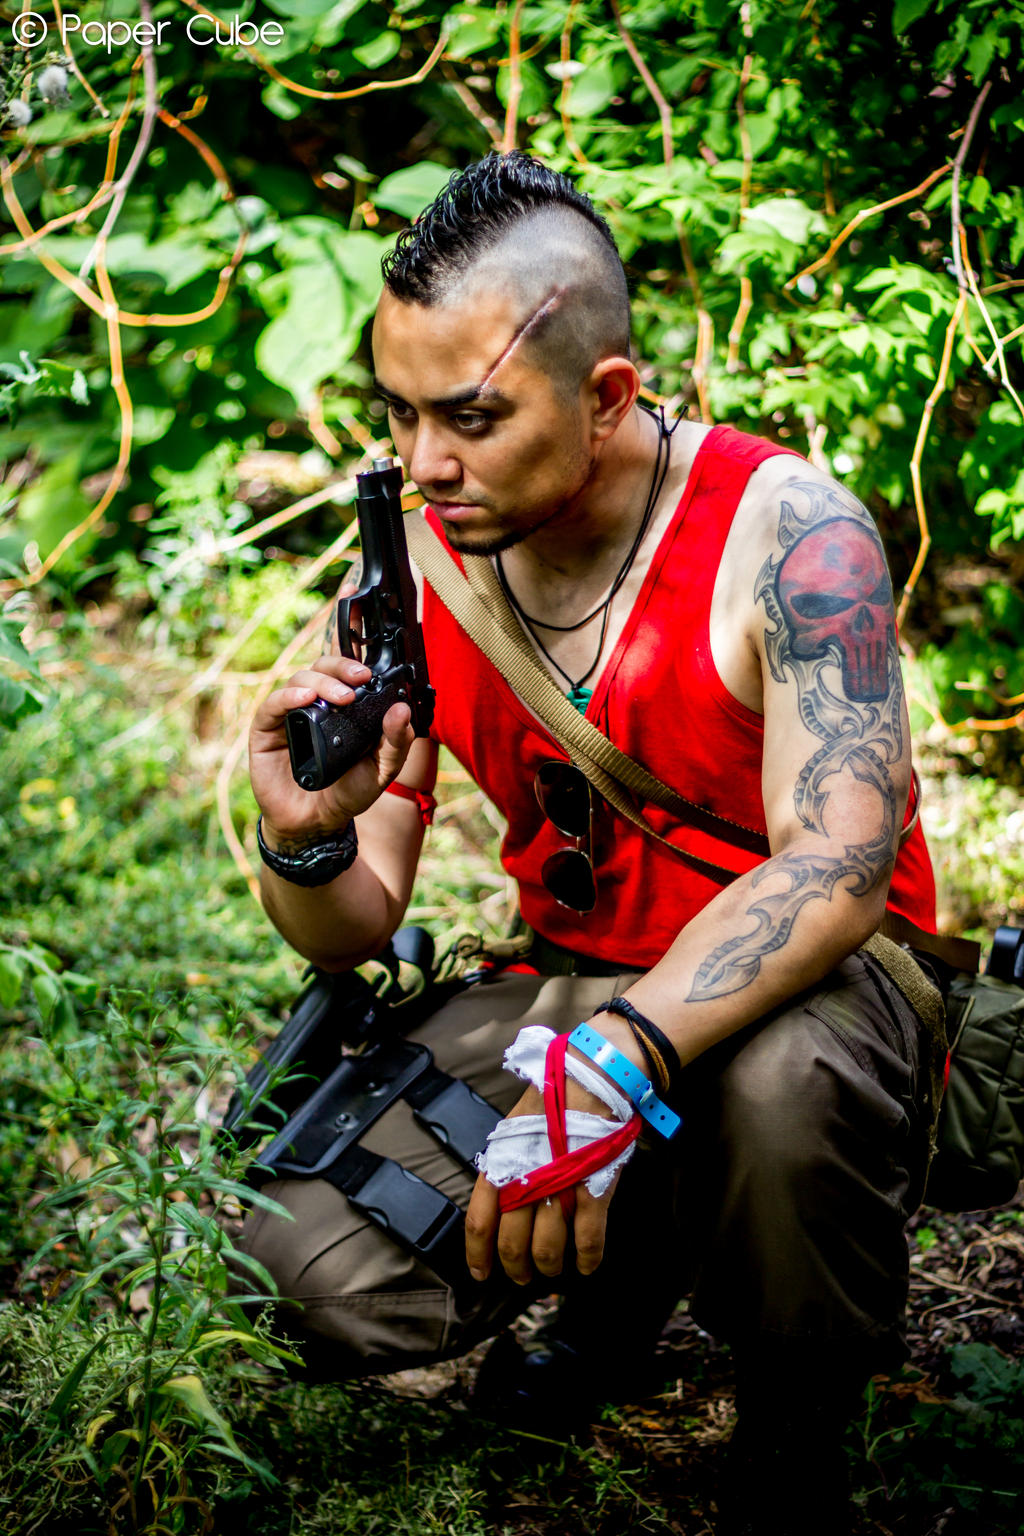 Vaas Montenegro - Far Cry 3 by Paper-Cube on deviantART